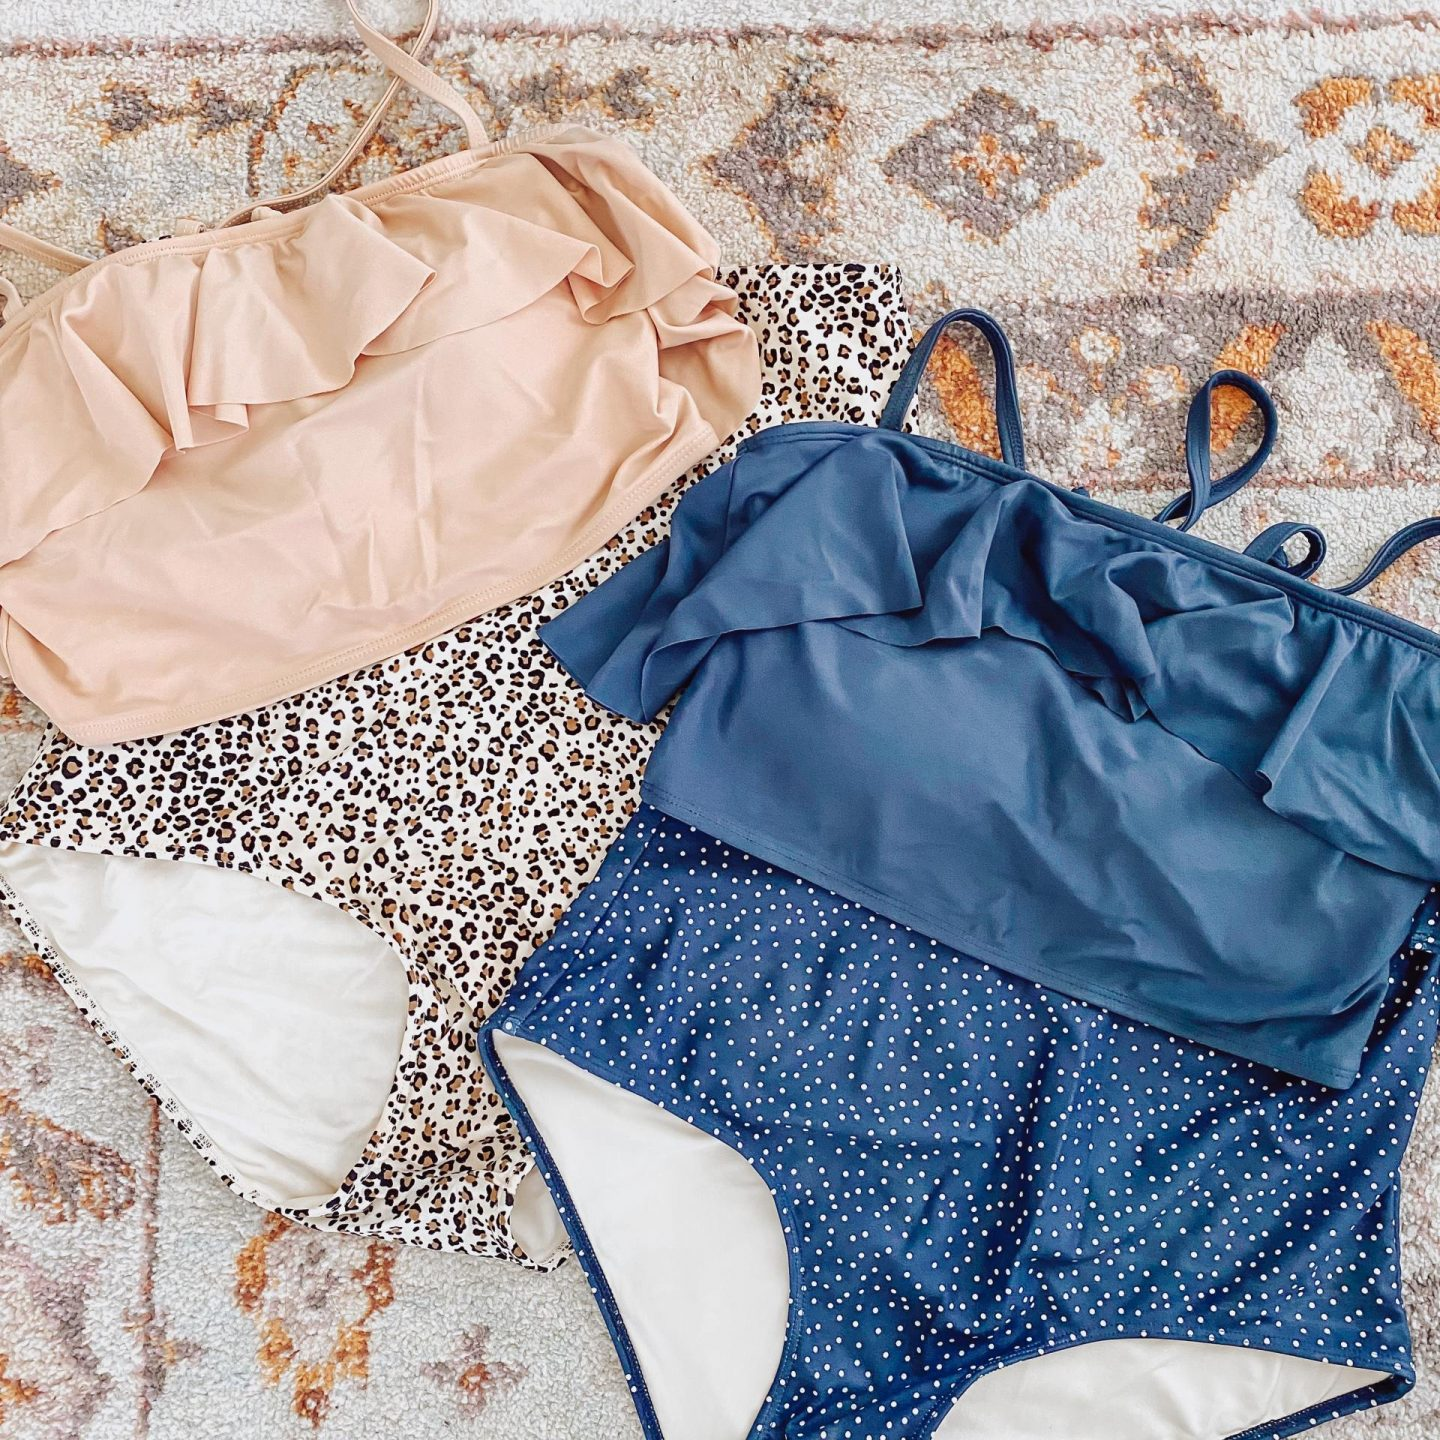 NC blogger Rebecca Lately shares her method of packing for the beach. If you love to pack minimally, check this out!